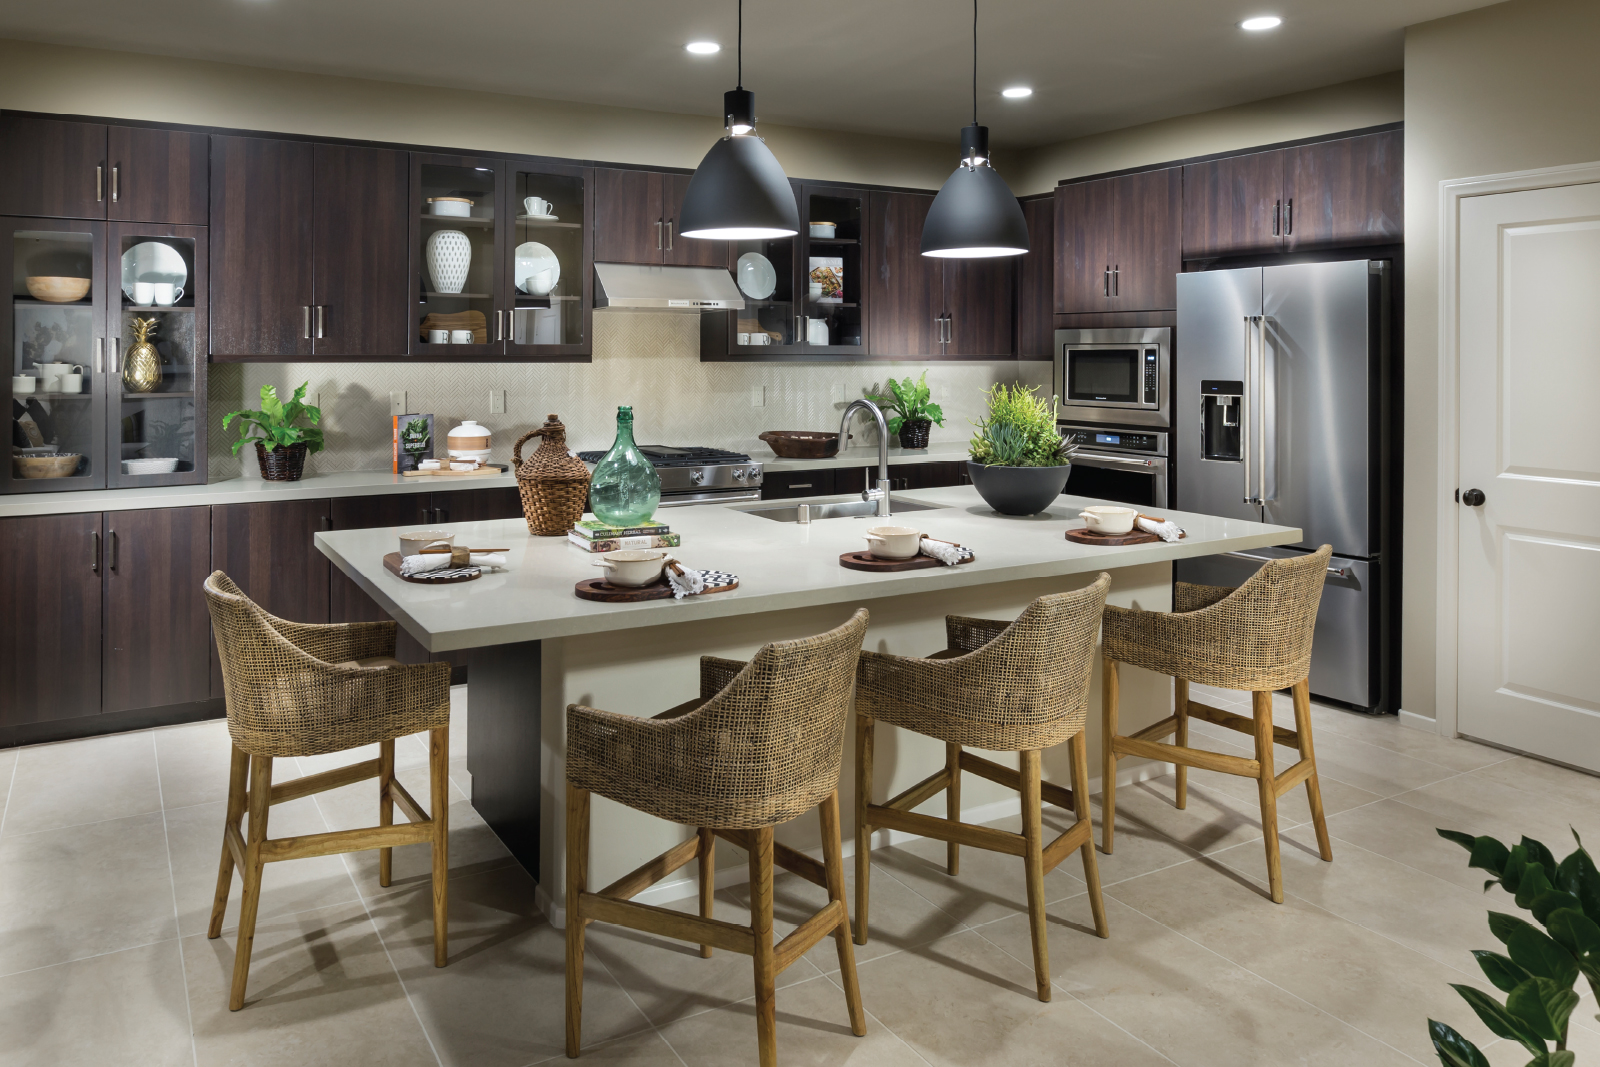 Chef Kitchen in San Bernardino New Homes for Sale